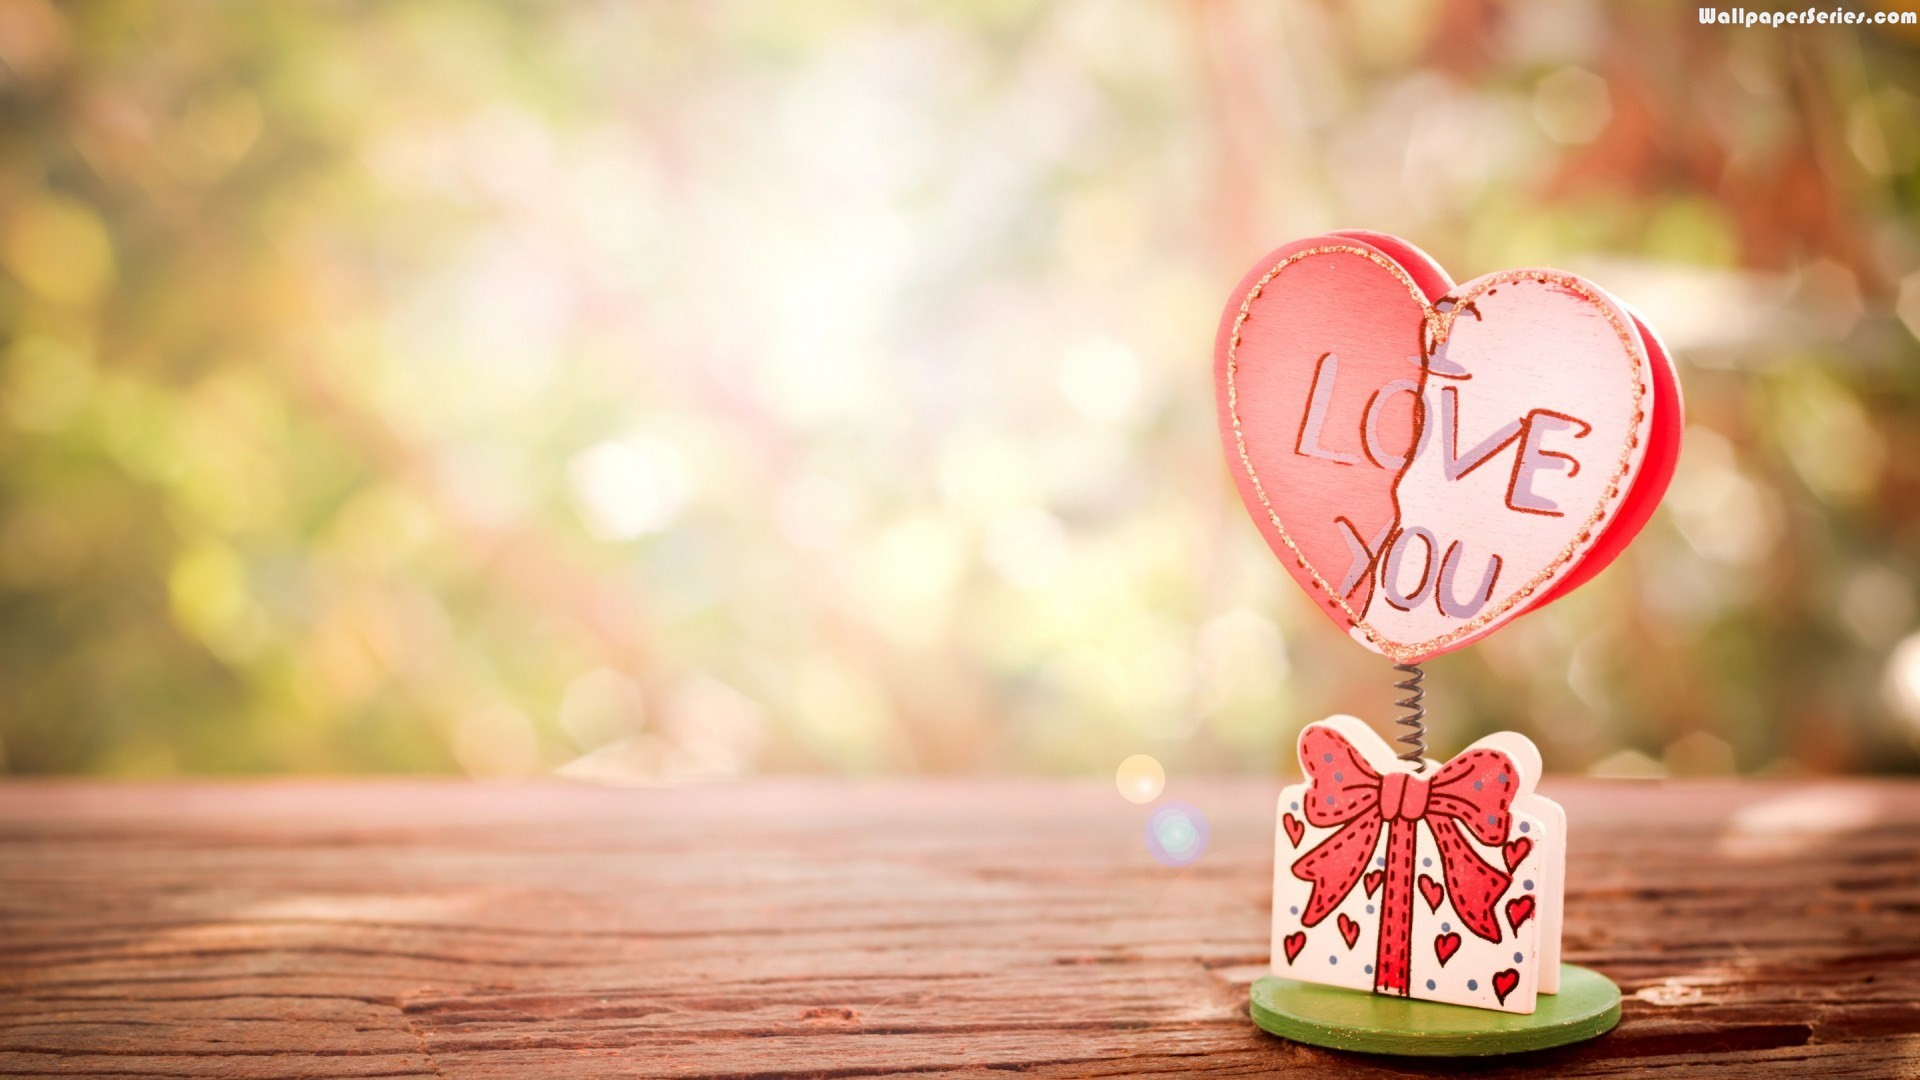 Happy Valentine Photography 2015 Wallpaper